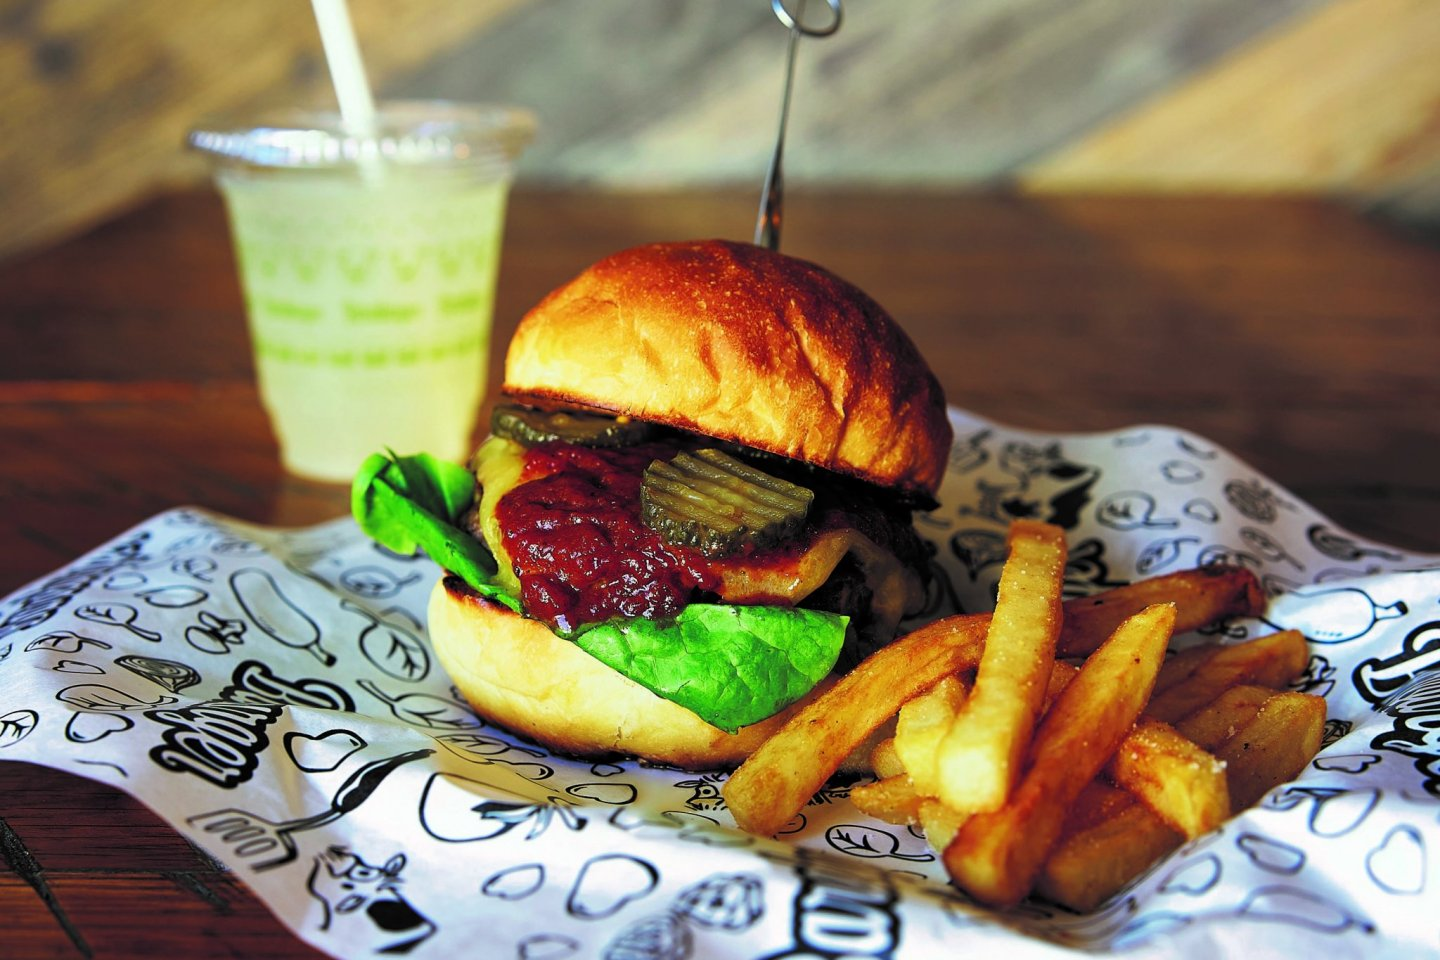 Burgers, chicken and waffles, and decadent thick shakes are some of what\'s on offer